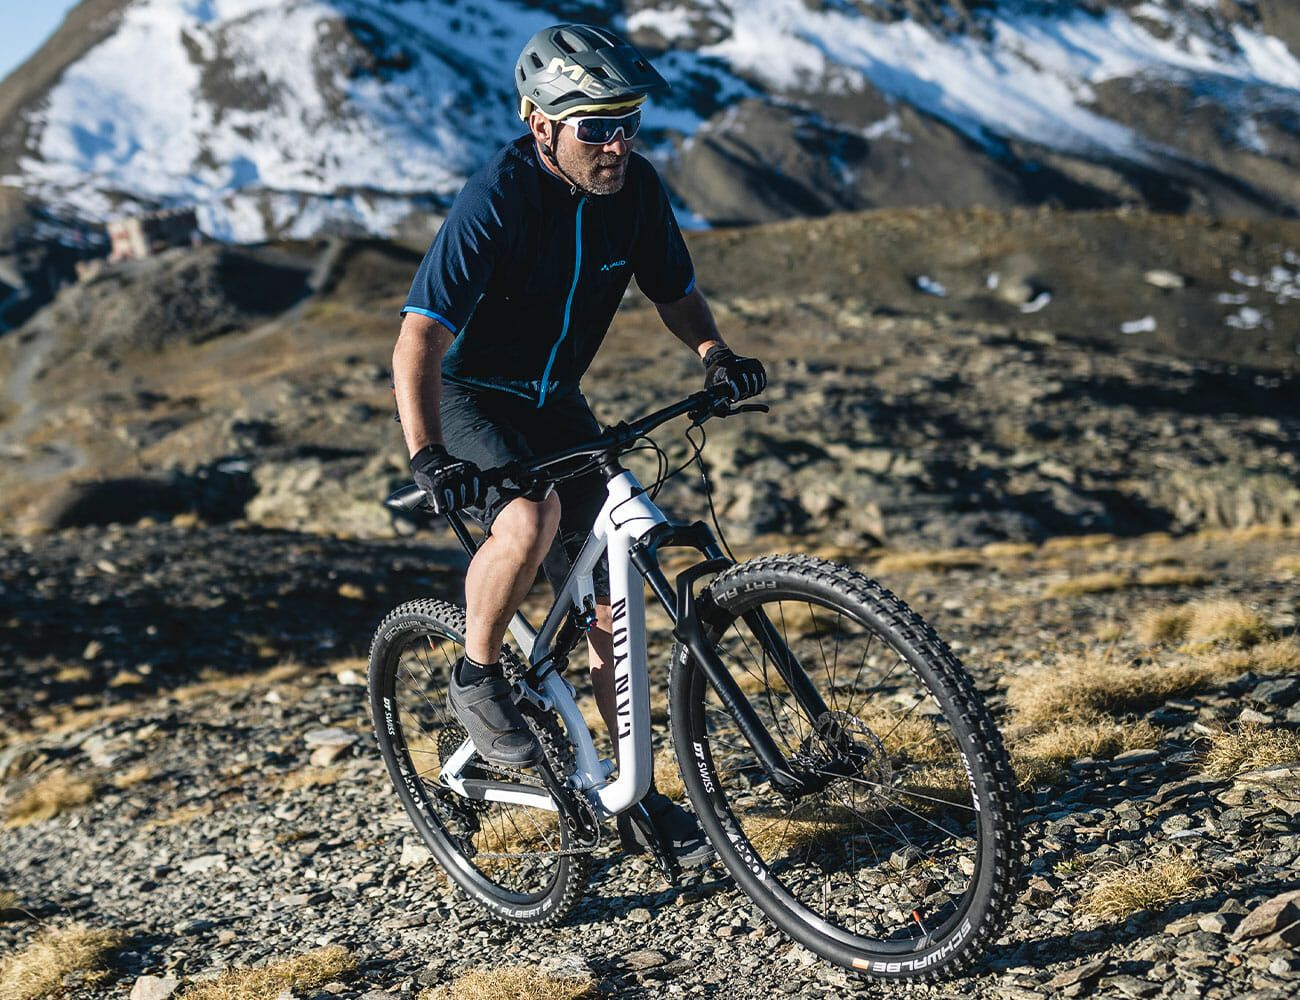 A Mountain Bike This Good Shouldn't Be This Affordable